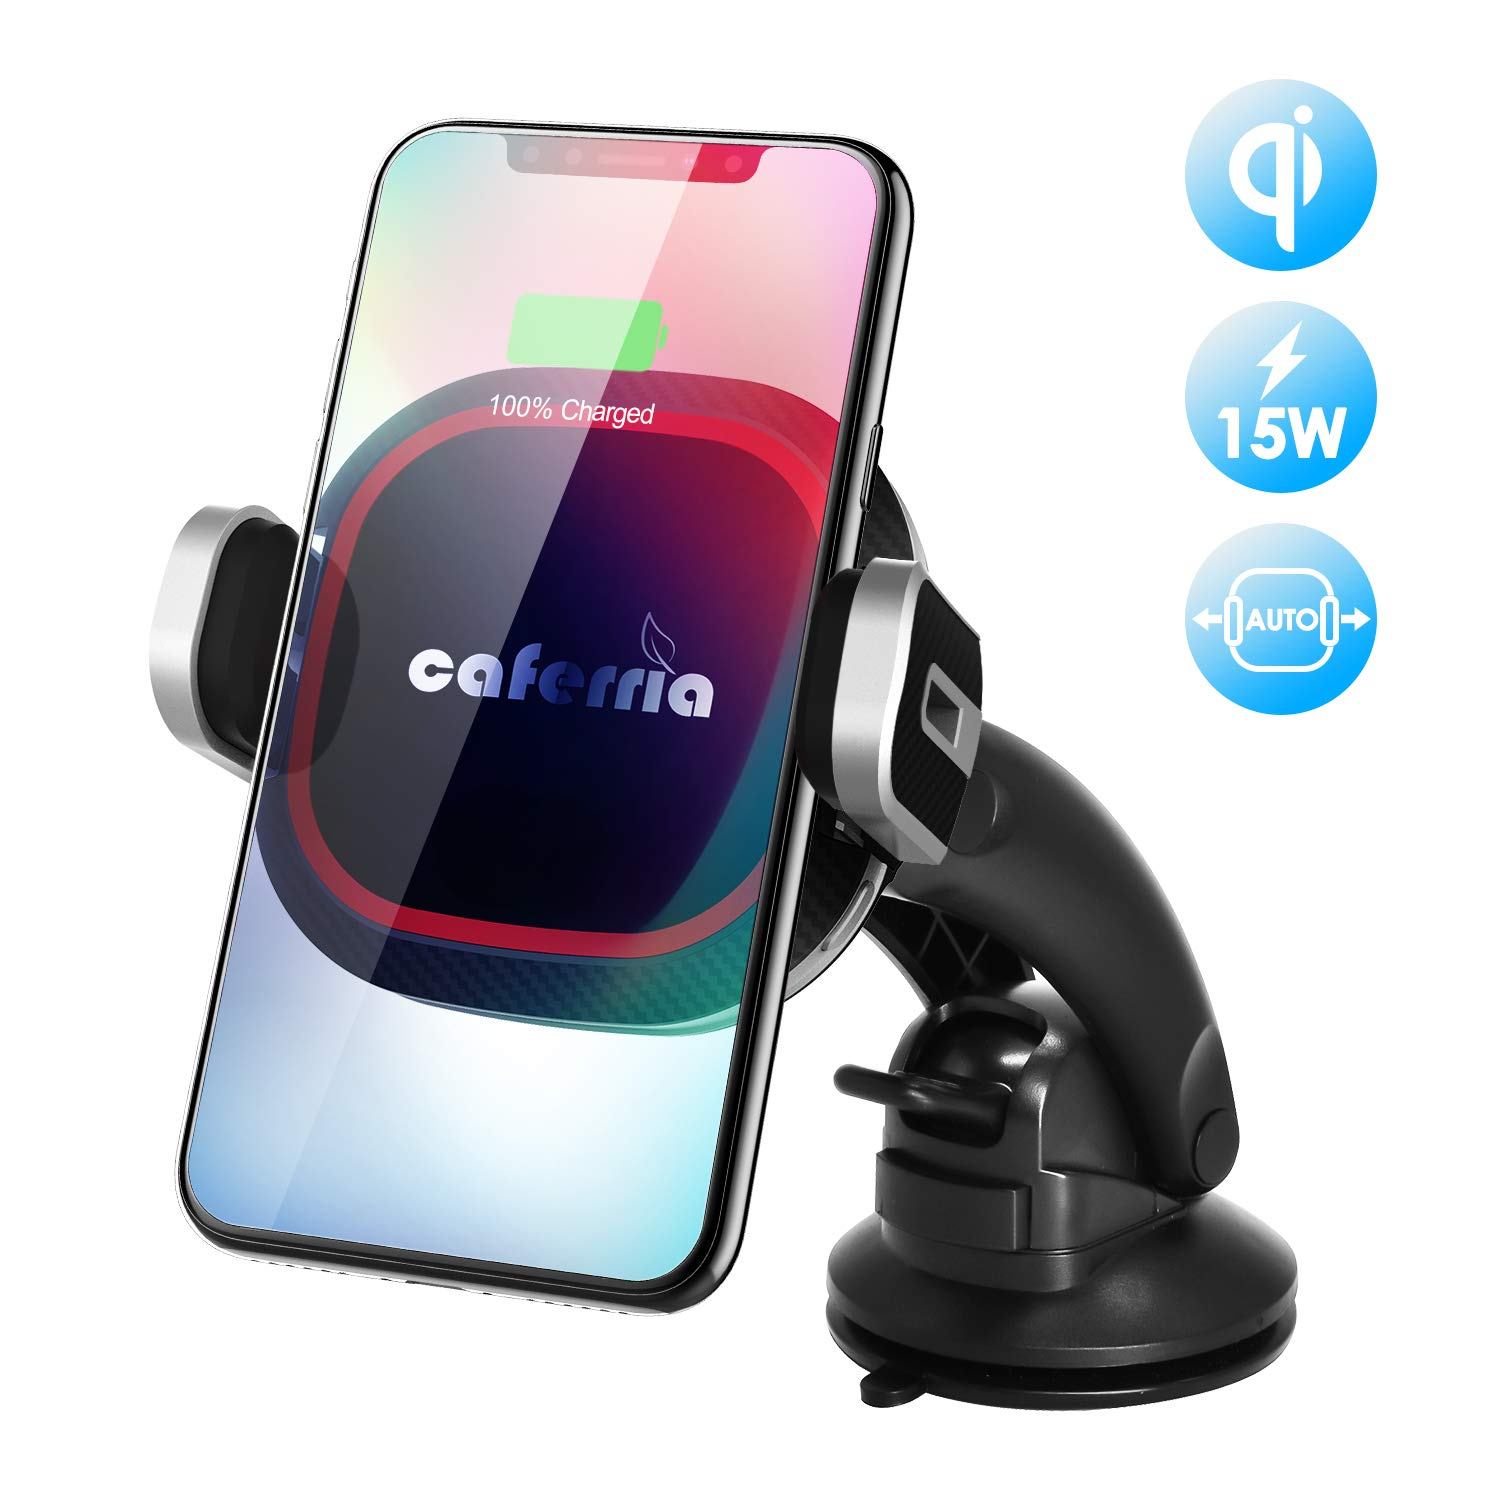 S8 Caferria Wireless Car Charger Mount 15W Fast Charging Qi Charger with Infrared Auto Clamping Windshield Dashboard Air Vent Phone Holder for iPhone X XR Xs Max 8 Plus Samsung Note 9//8 S9 Edge S7